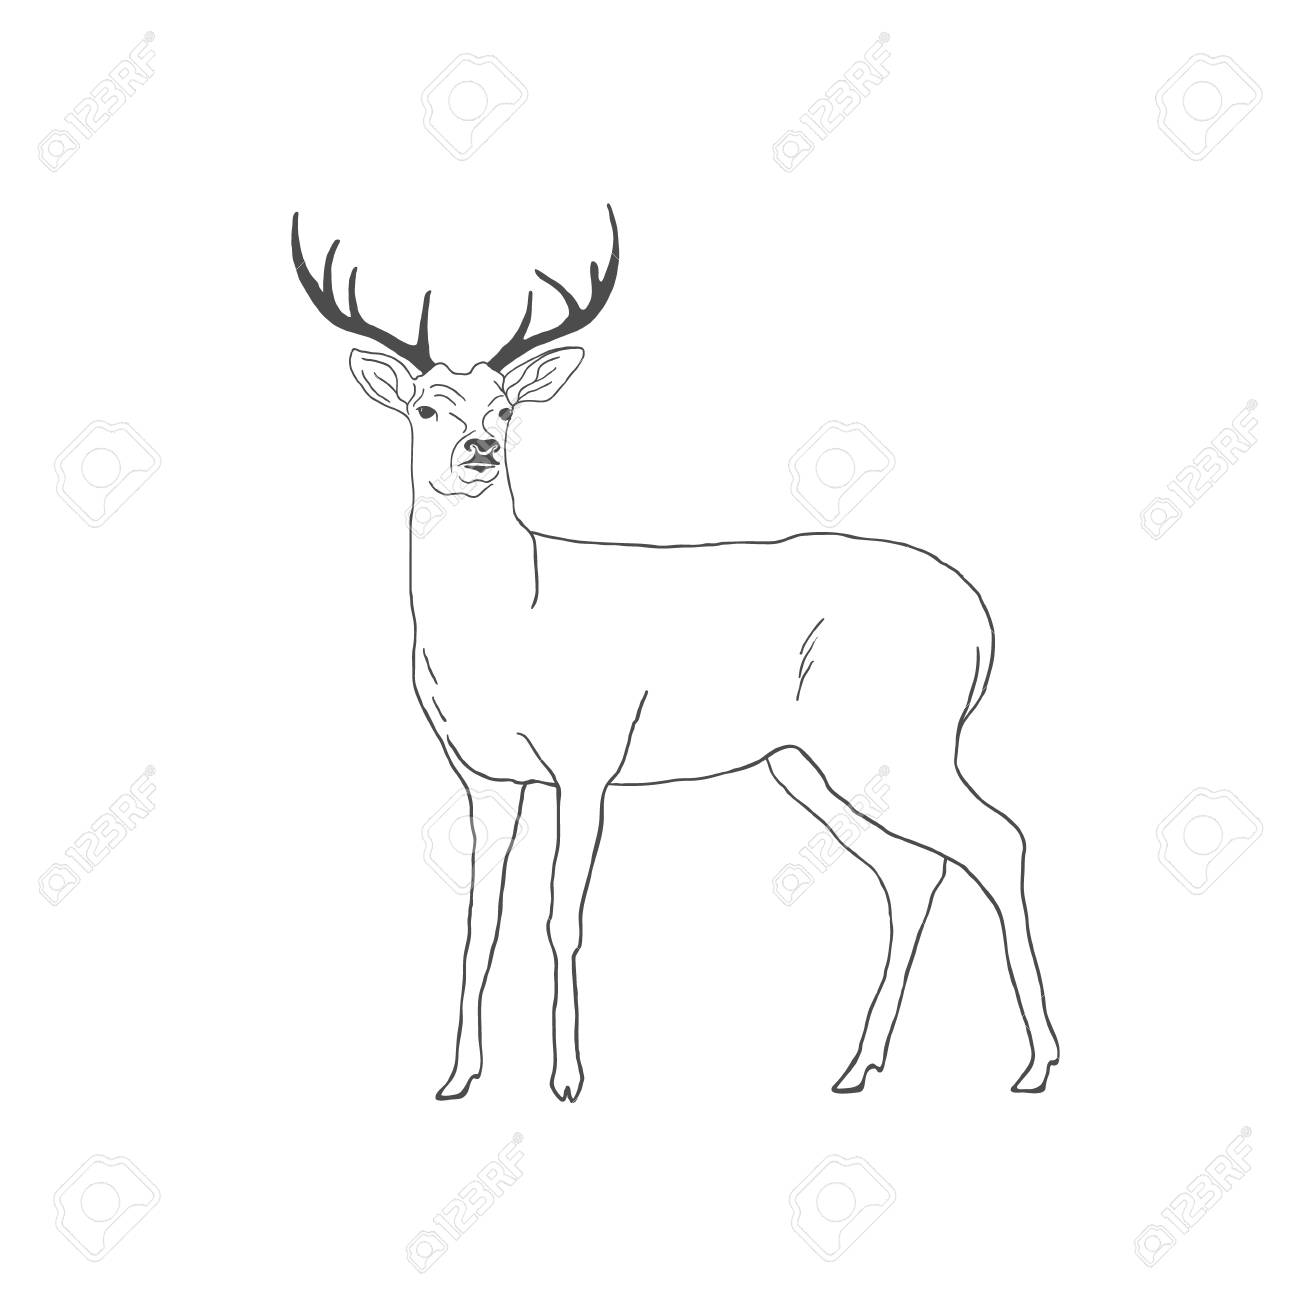 1300x1300 Hand Drawn Deer Isolated On White Background. Vector Illustration